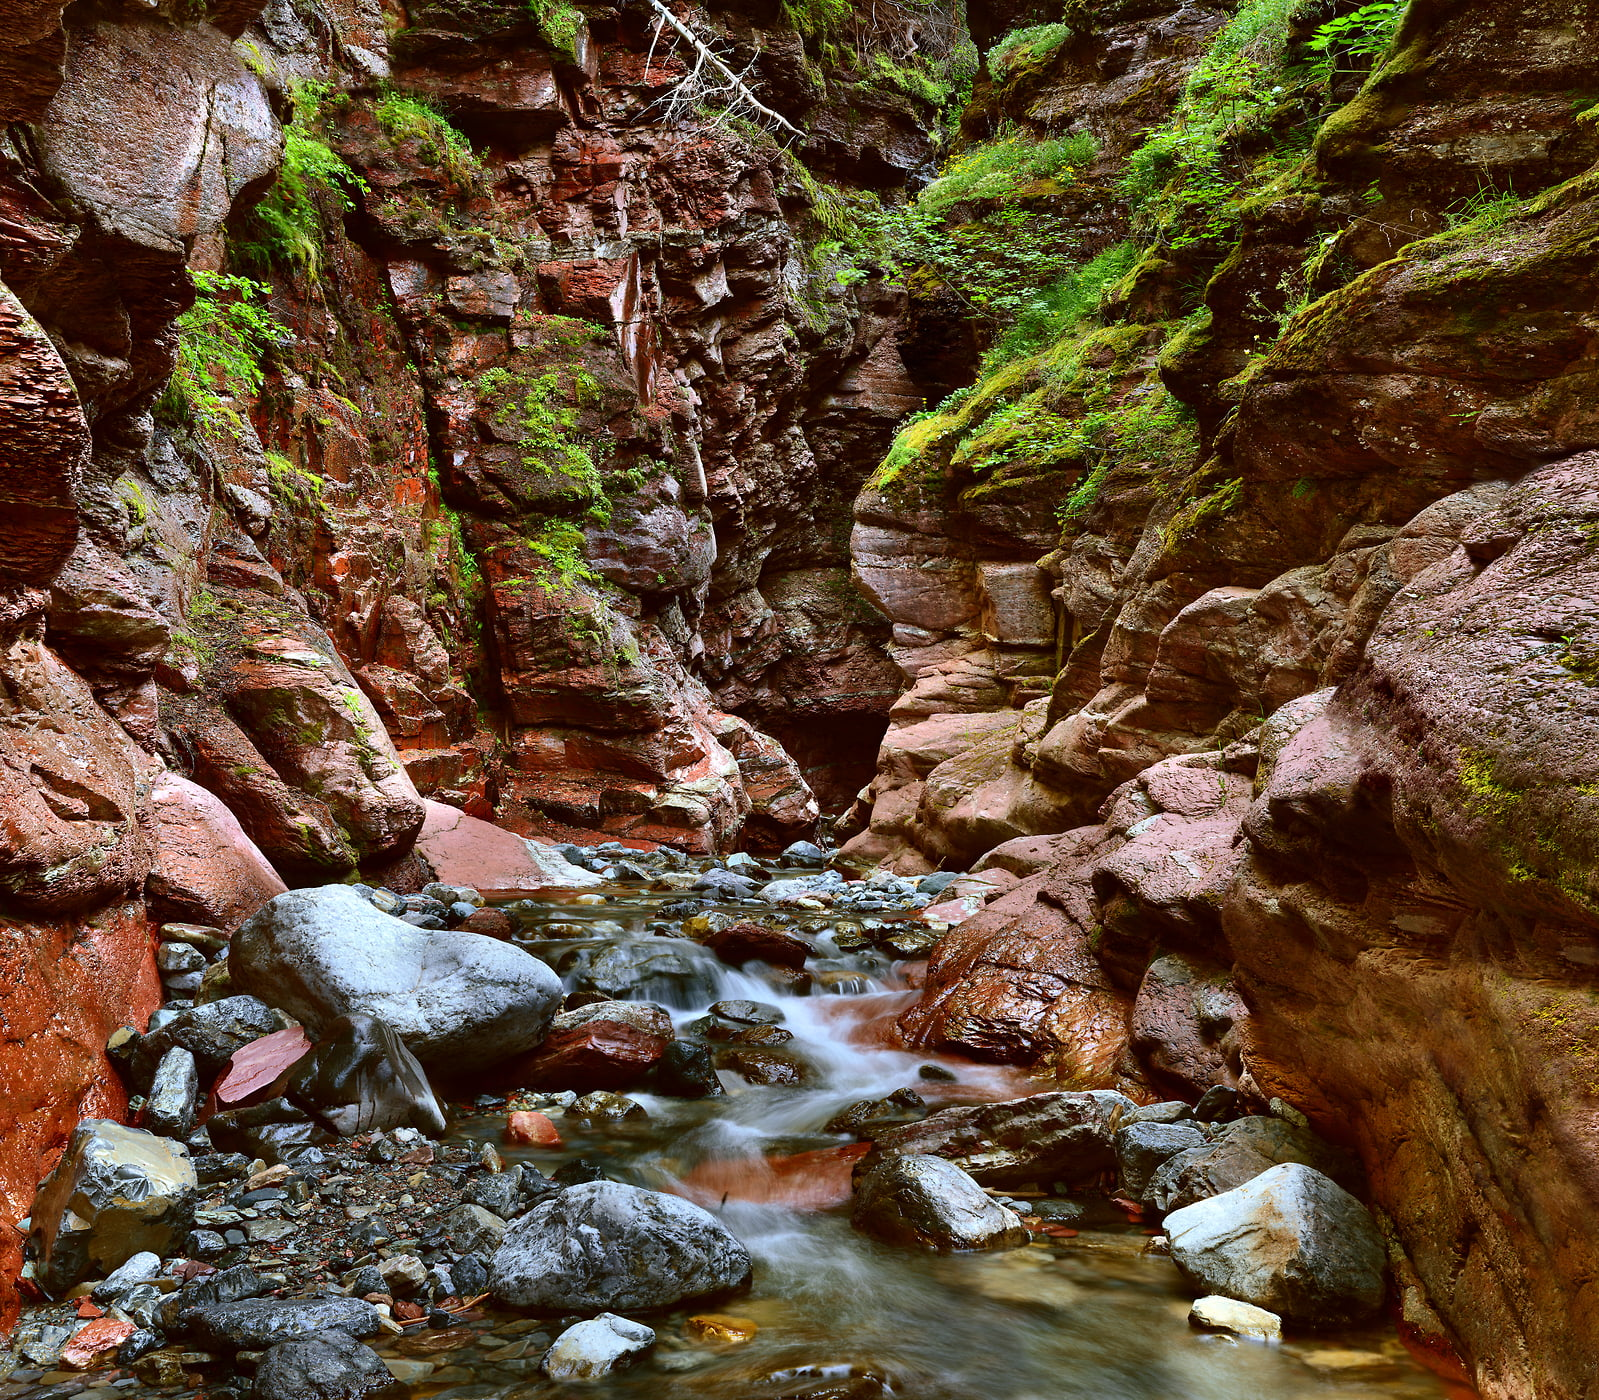 5,868 megapixels! A very high resolution, large-format VAST photo print of a stream, waterfall, and rocks; fine art nature photo created by Steve Webster in Red Rock Canyon, Waterton Lakes National Park, Alberta Canada